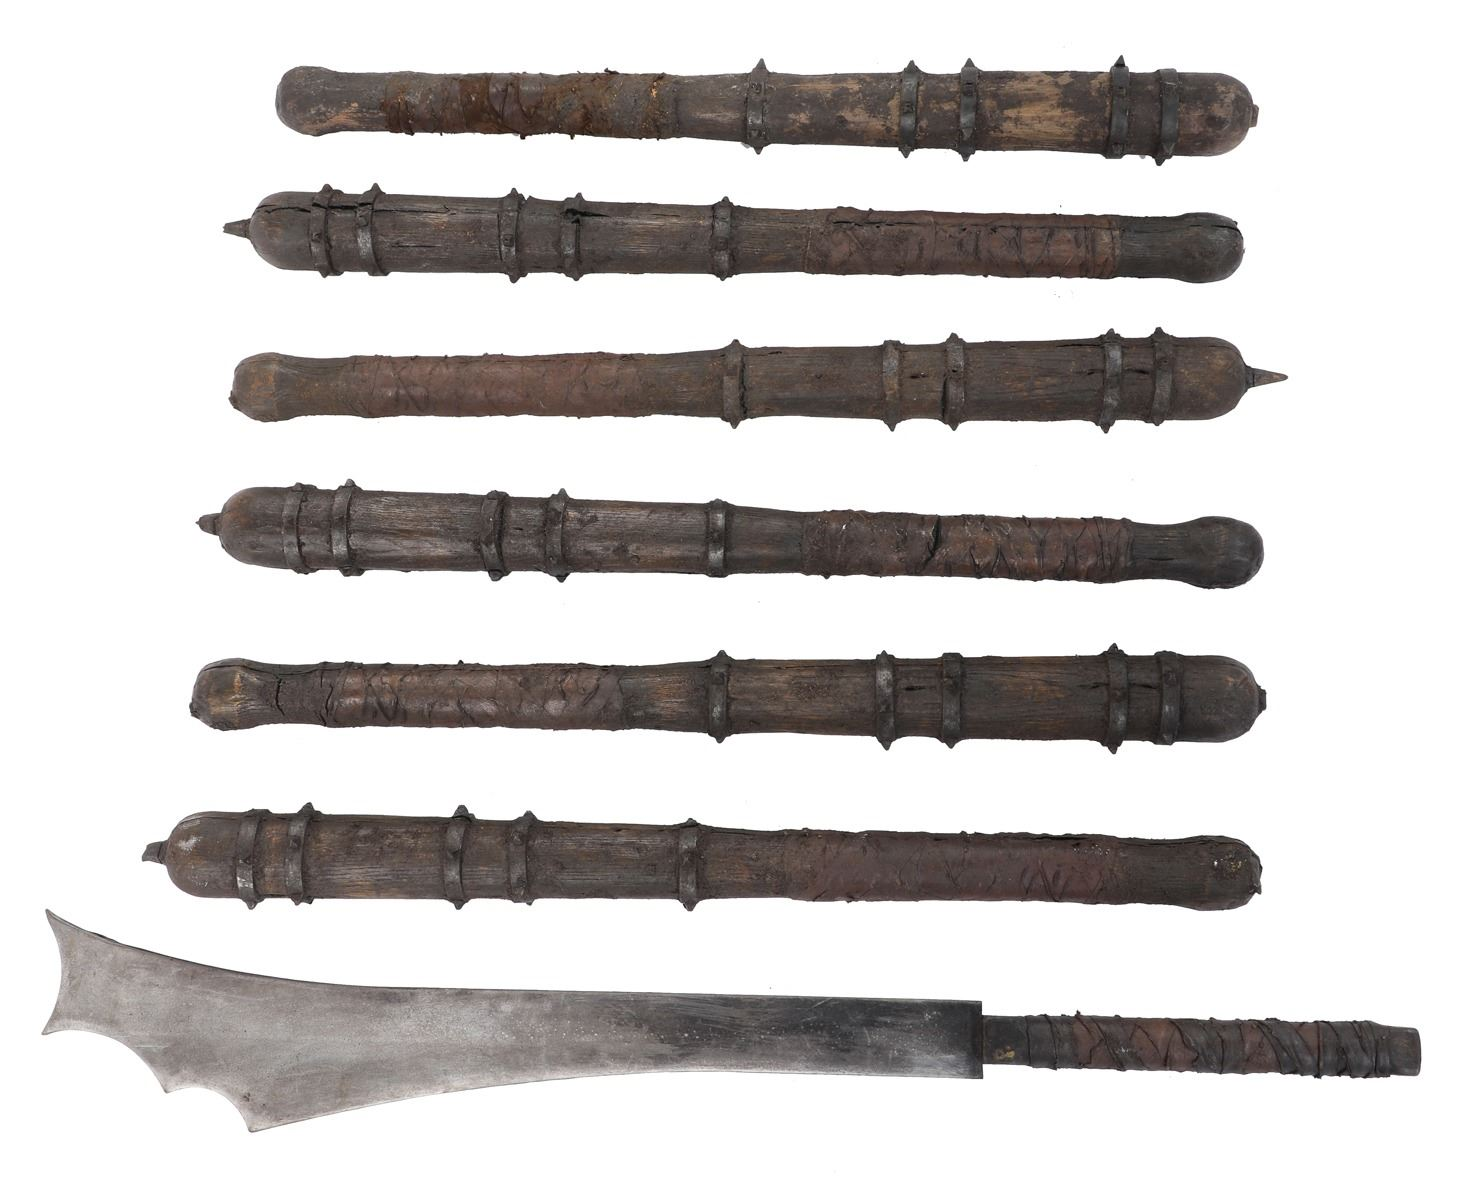 Saxon clubs (6) and cleaver sword (1) from Transformers: the Last Knight